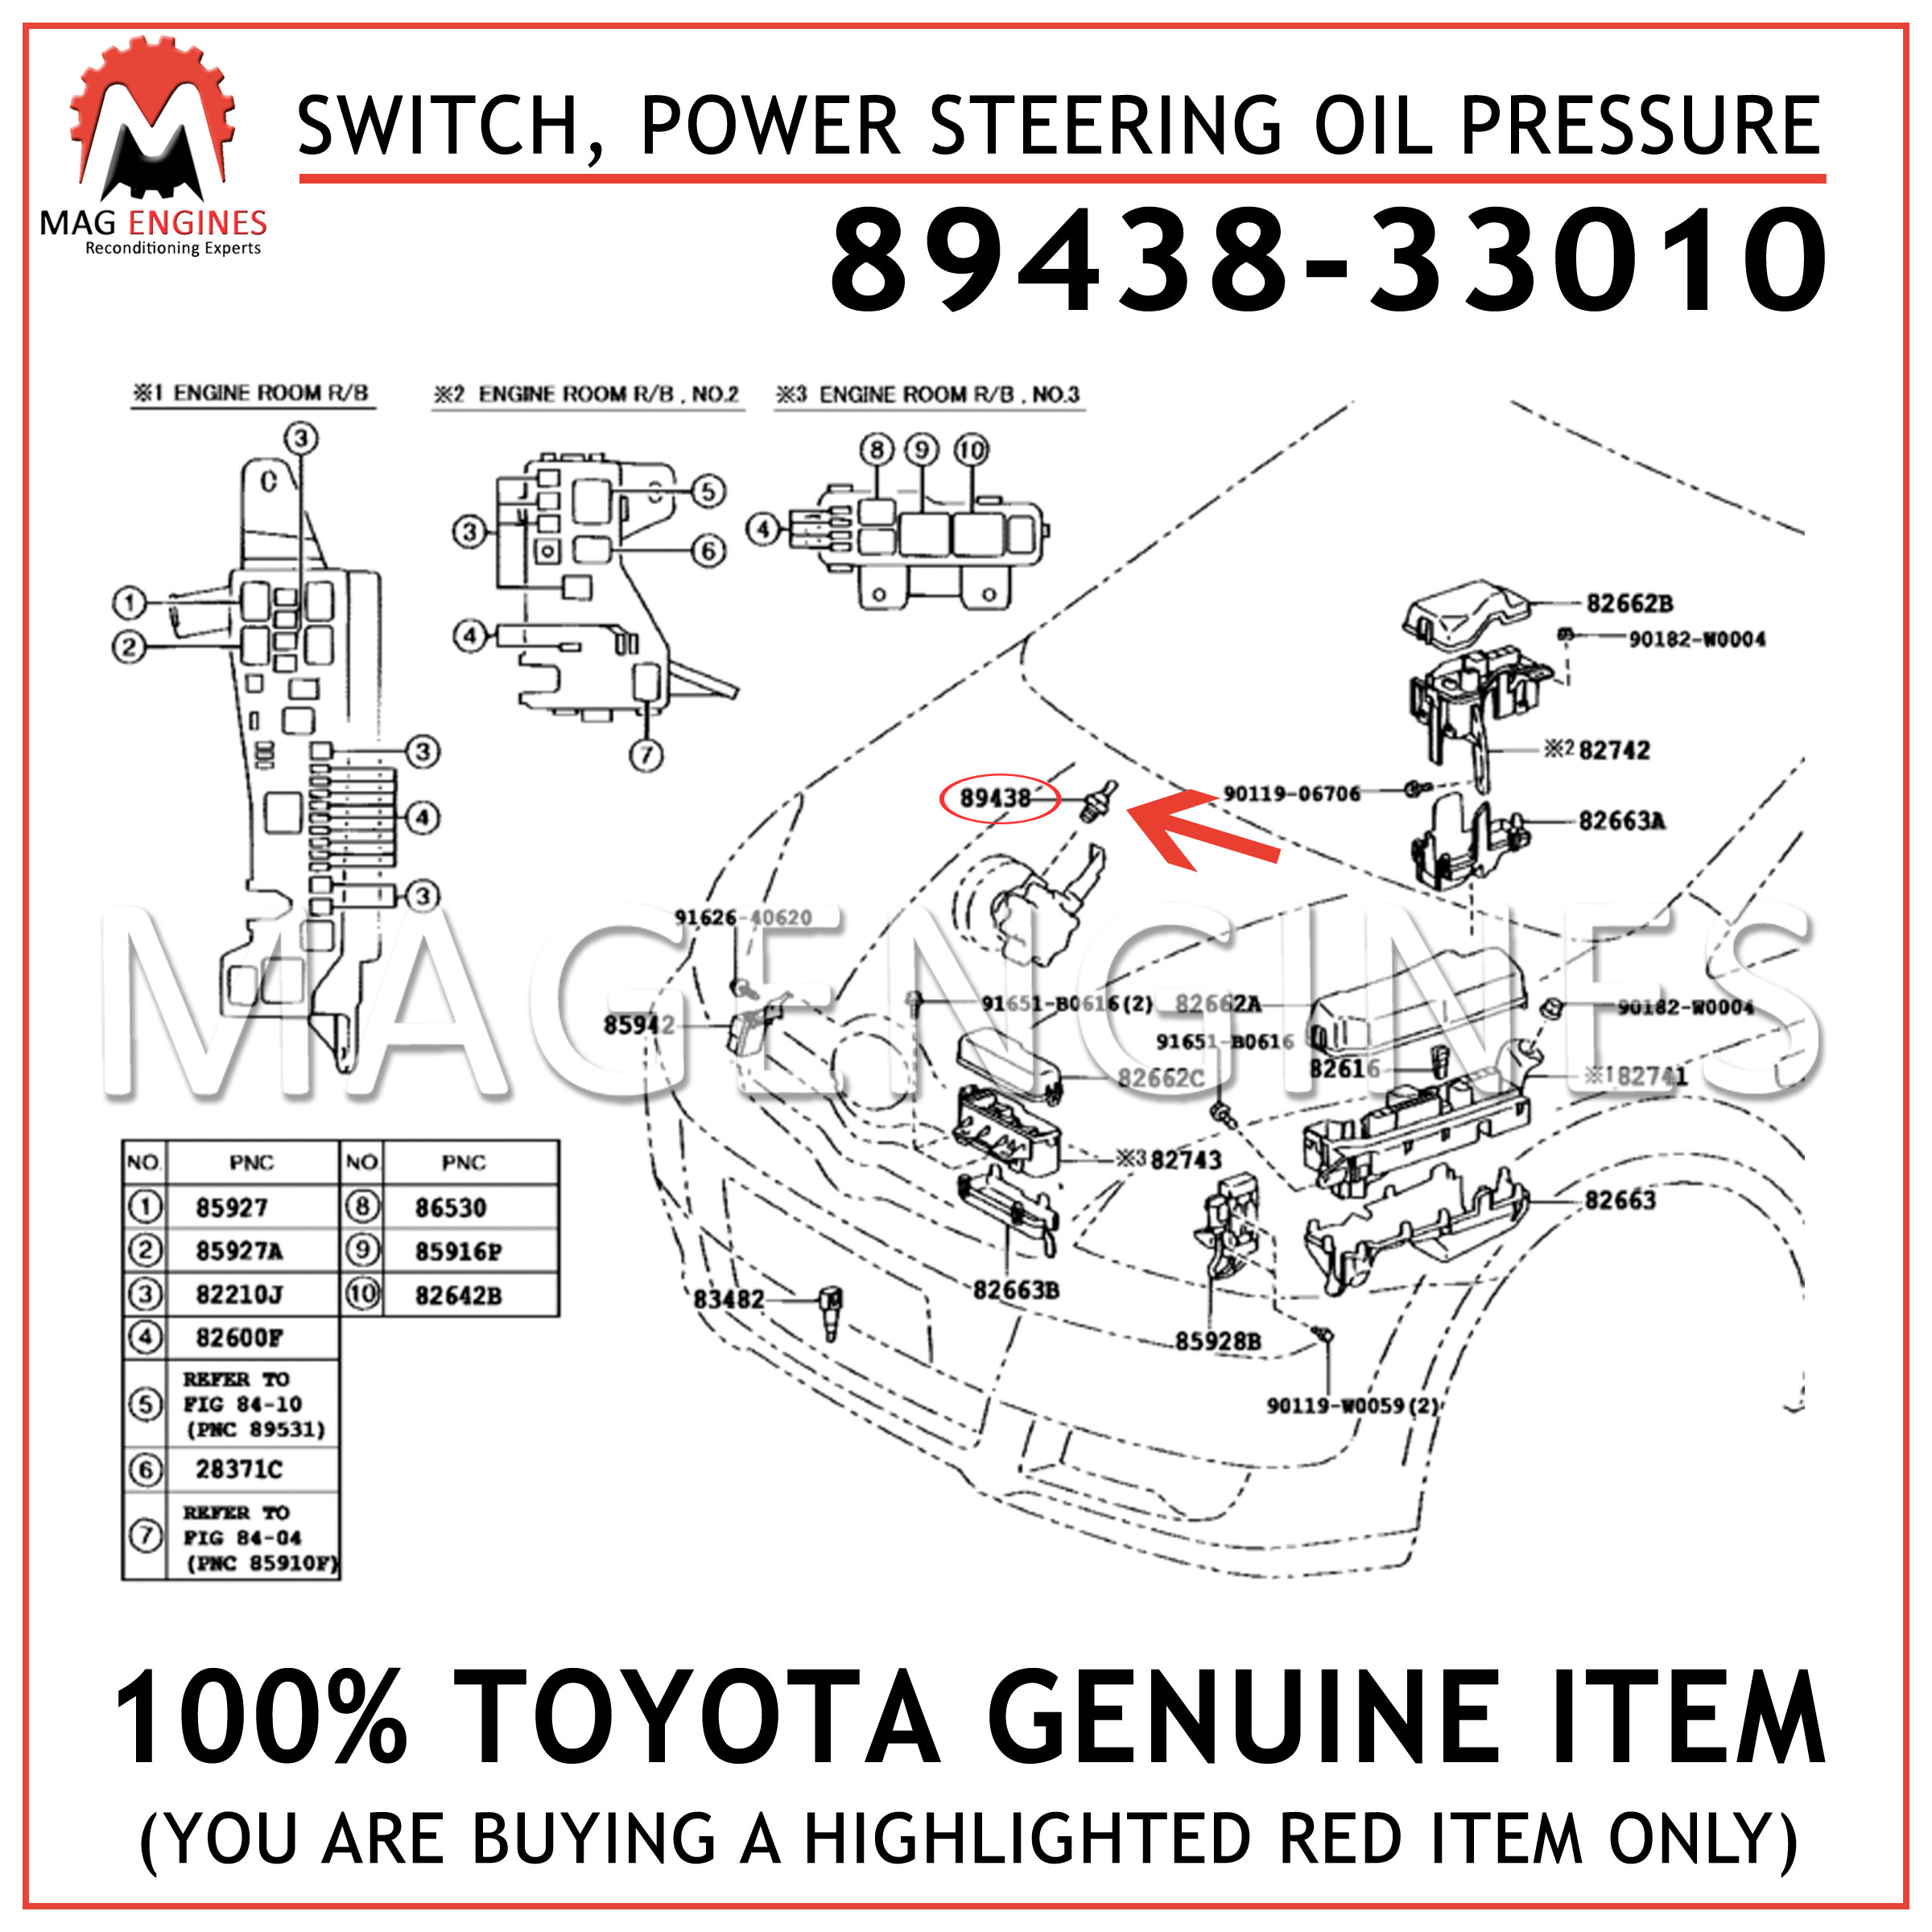 For Toyota Genuine Power Steering Pressure Switch Front 8943833010